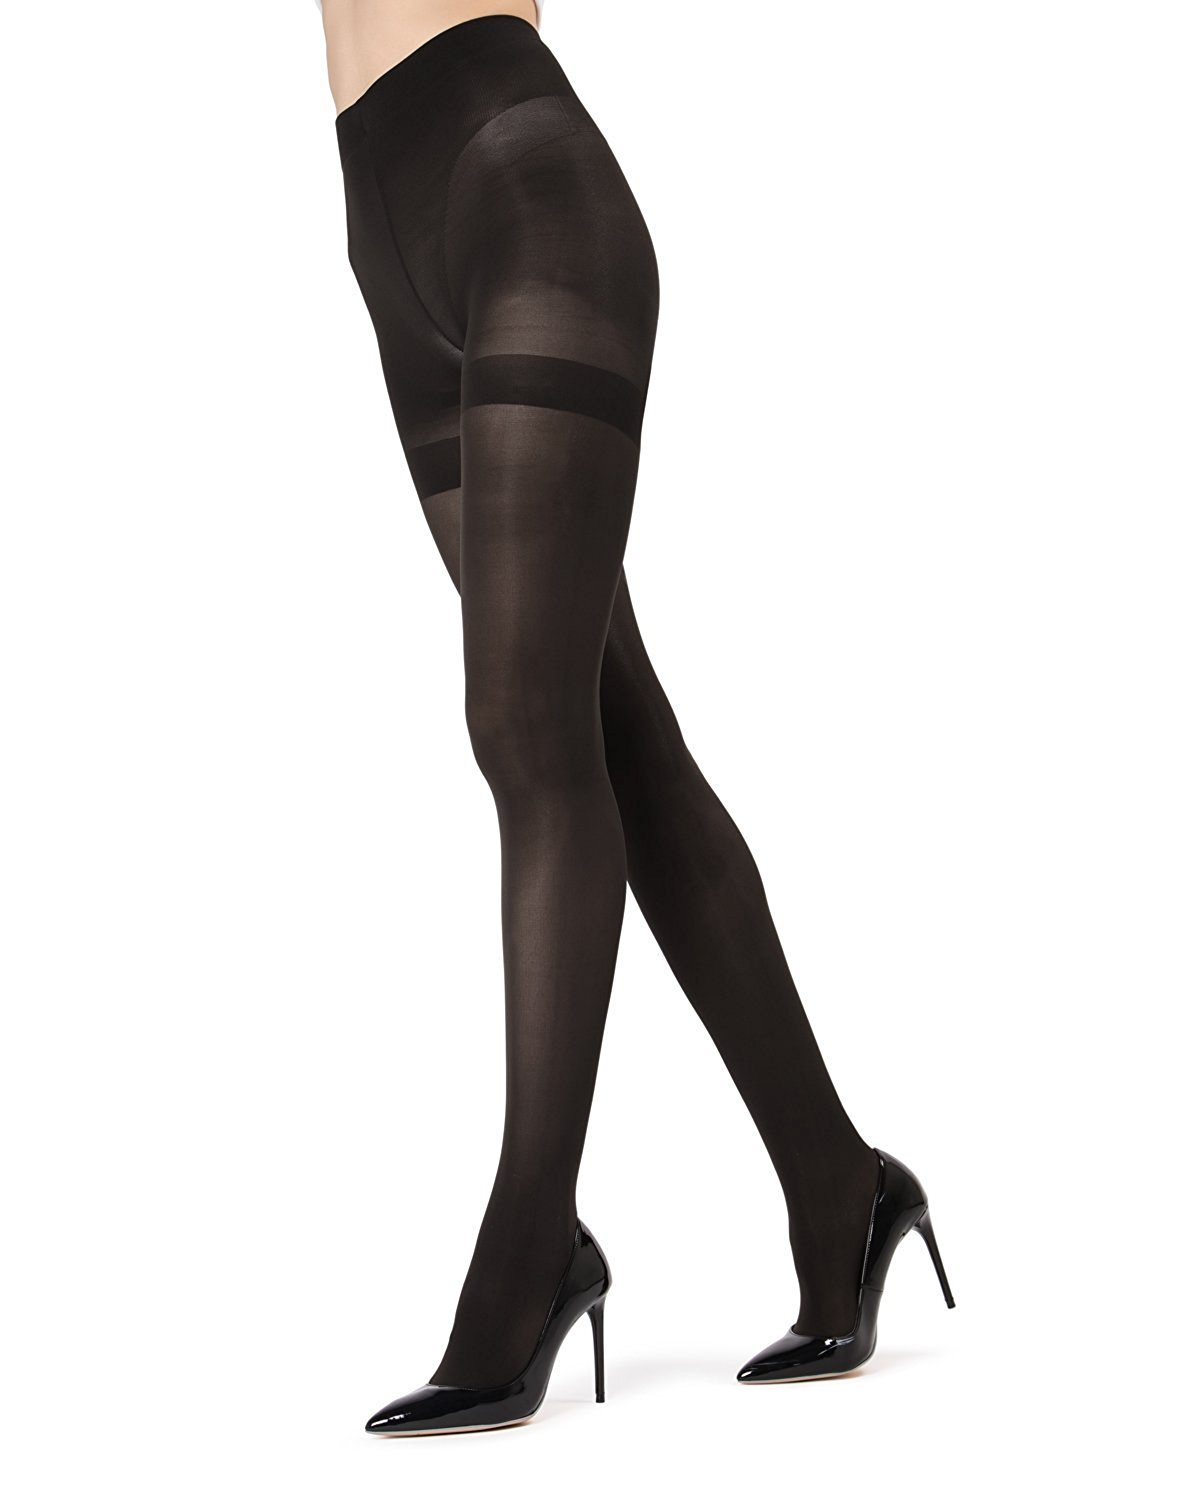 2ddc49edc Get Quotations · MeMoi Perfectly Opaque Shaper Tights